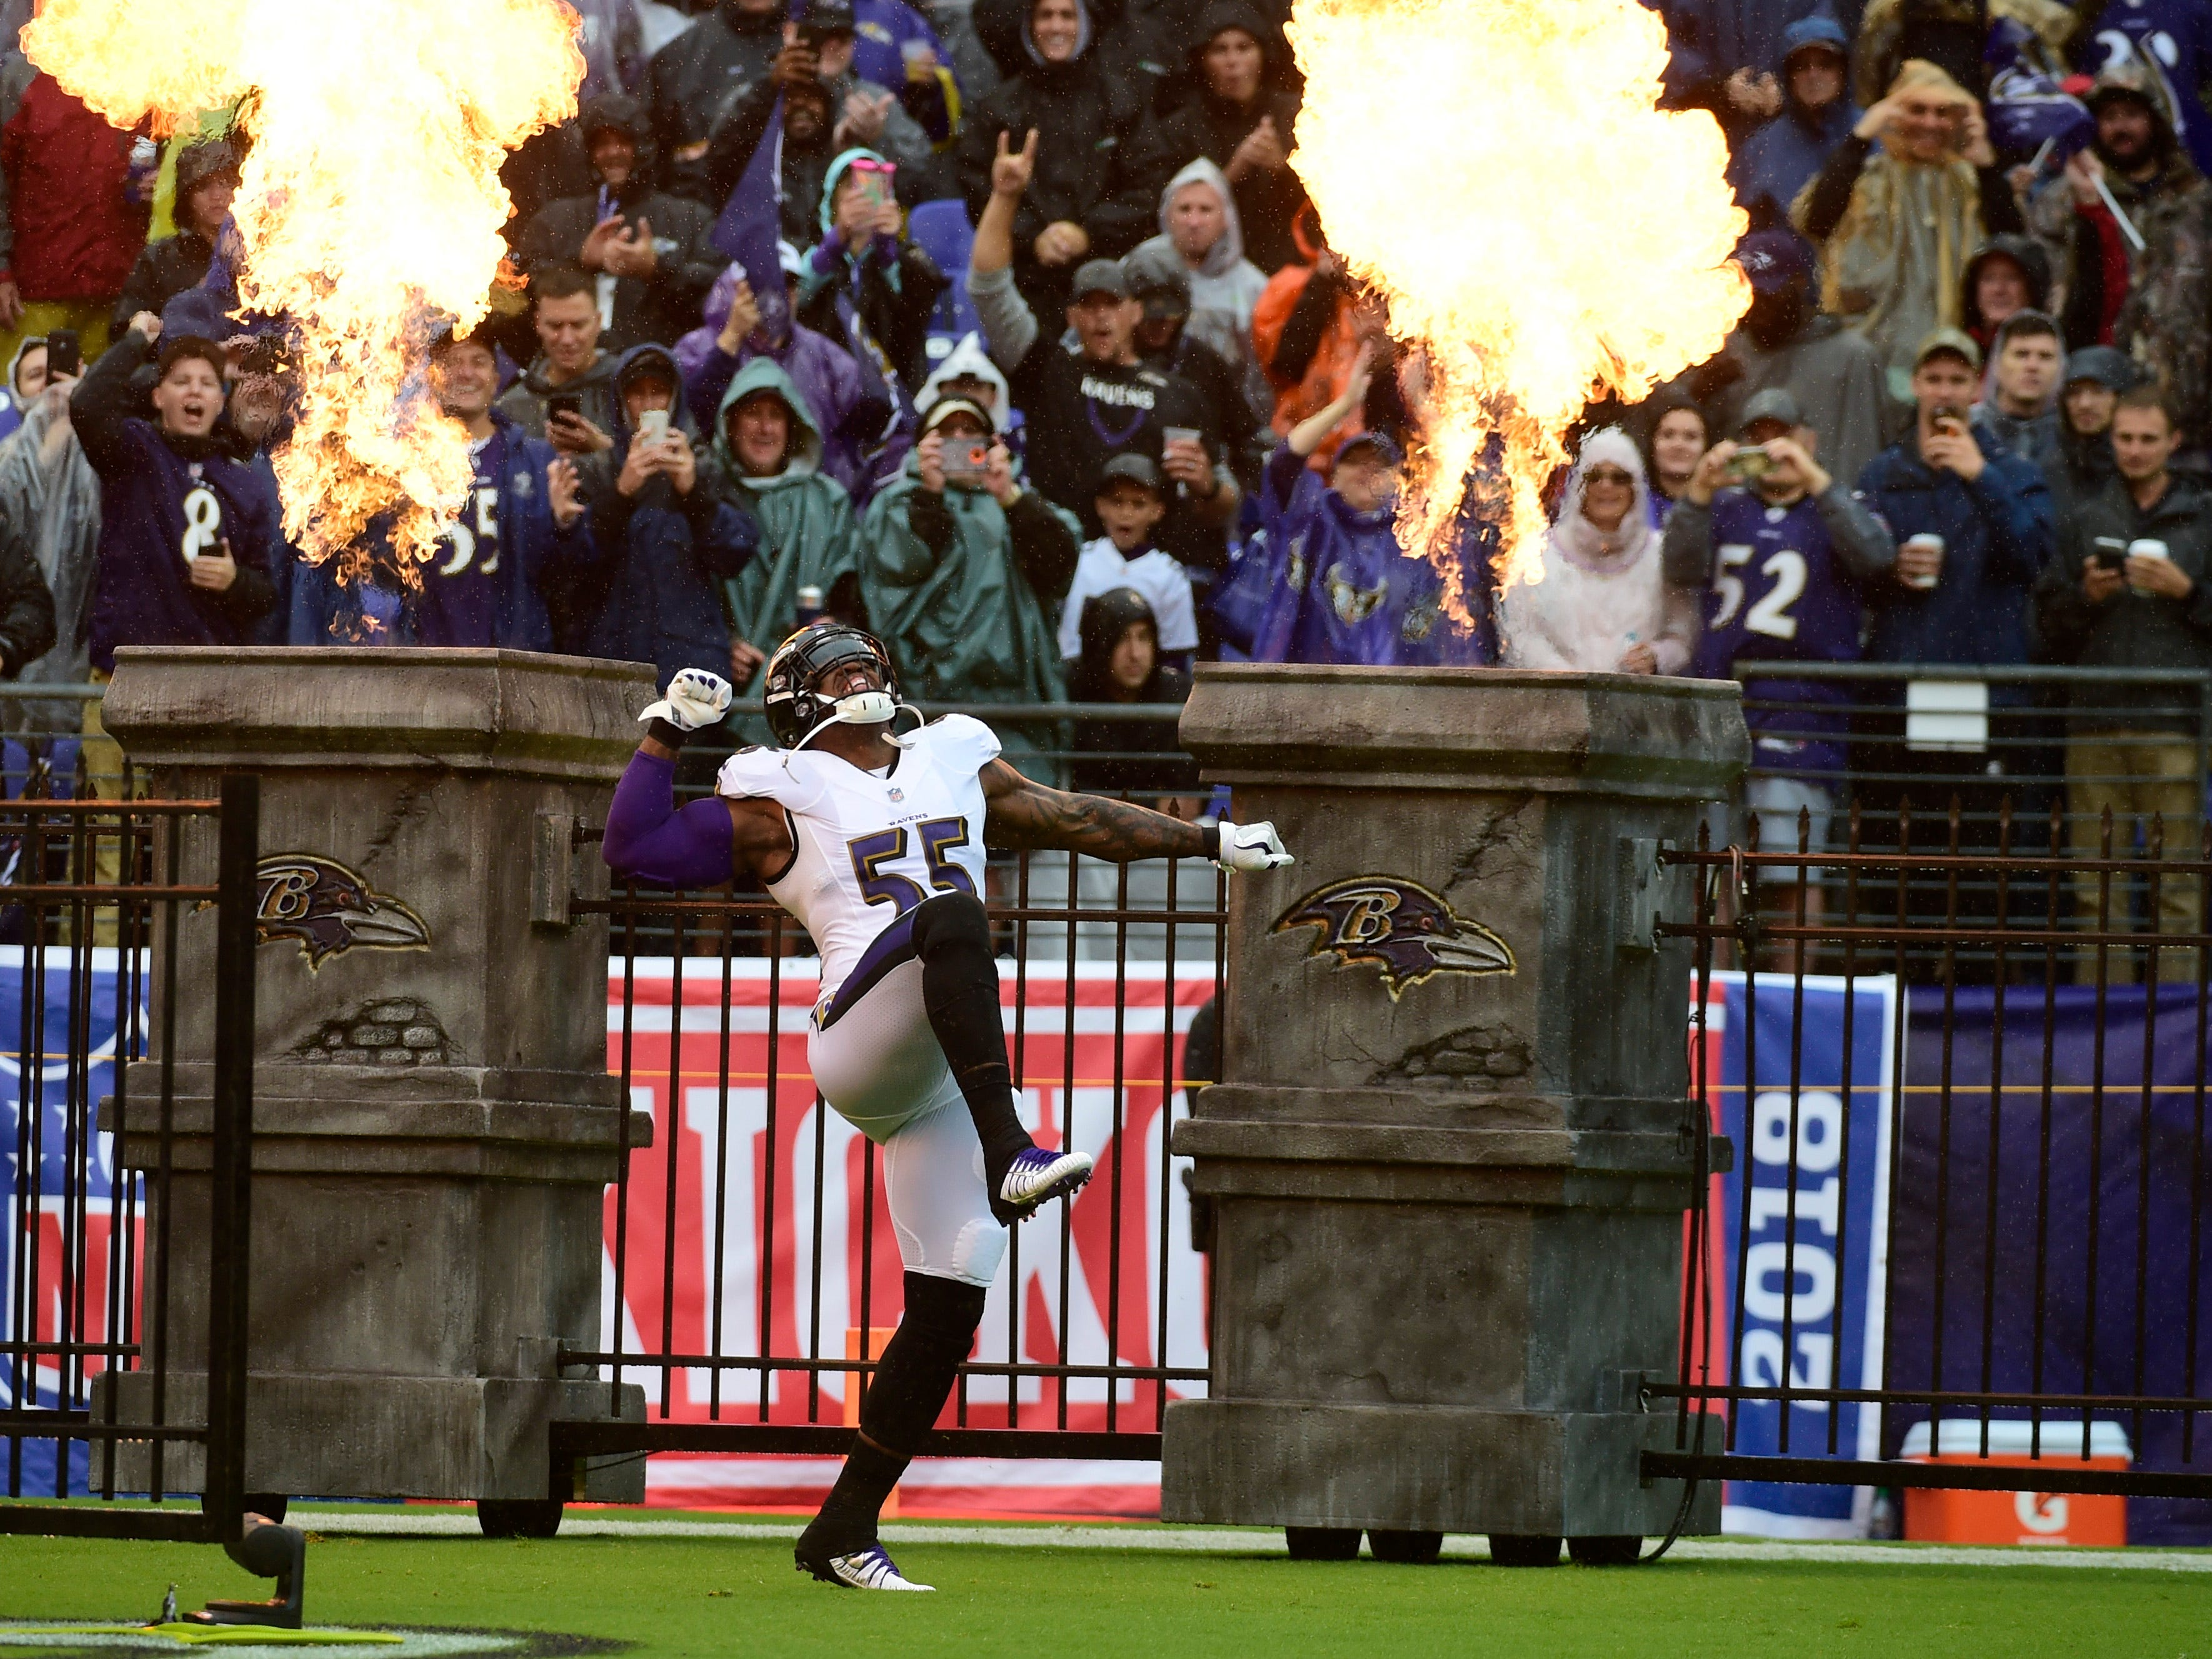 Baltimore Ravens linebacker Terrell Suggs enters the field before the game against the Buffalo Bills at M&T Bank Stadium.